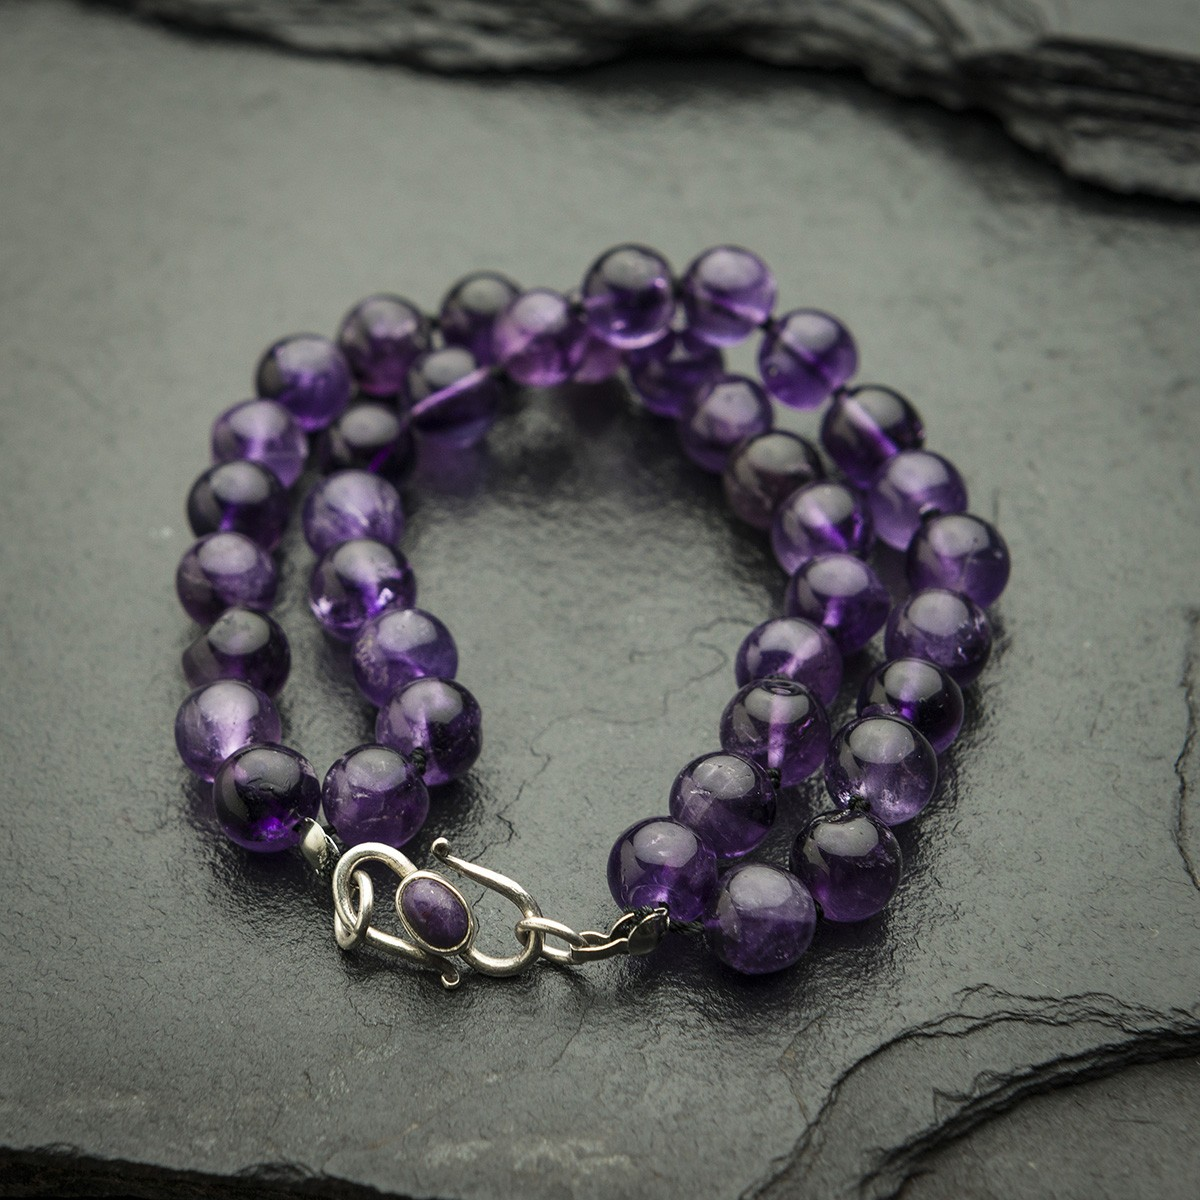 Double Stranded Amethyst Bracelet | by Gemboree | founder, Janet Pulford (South Africa)